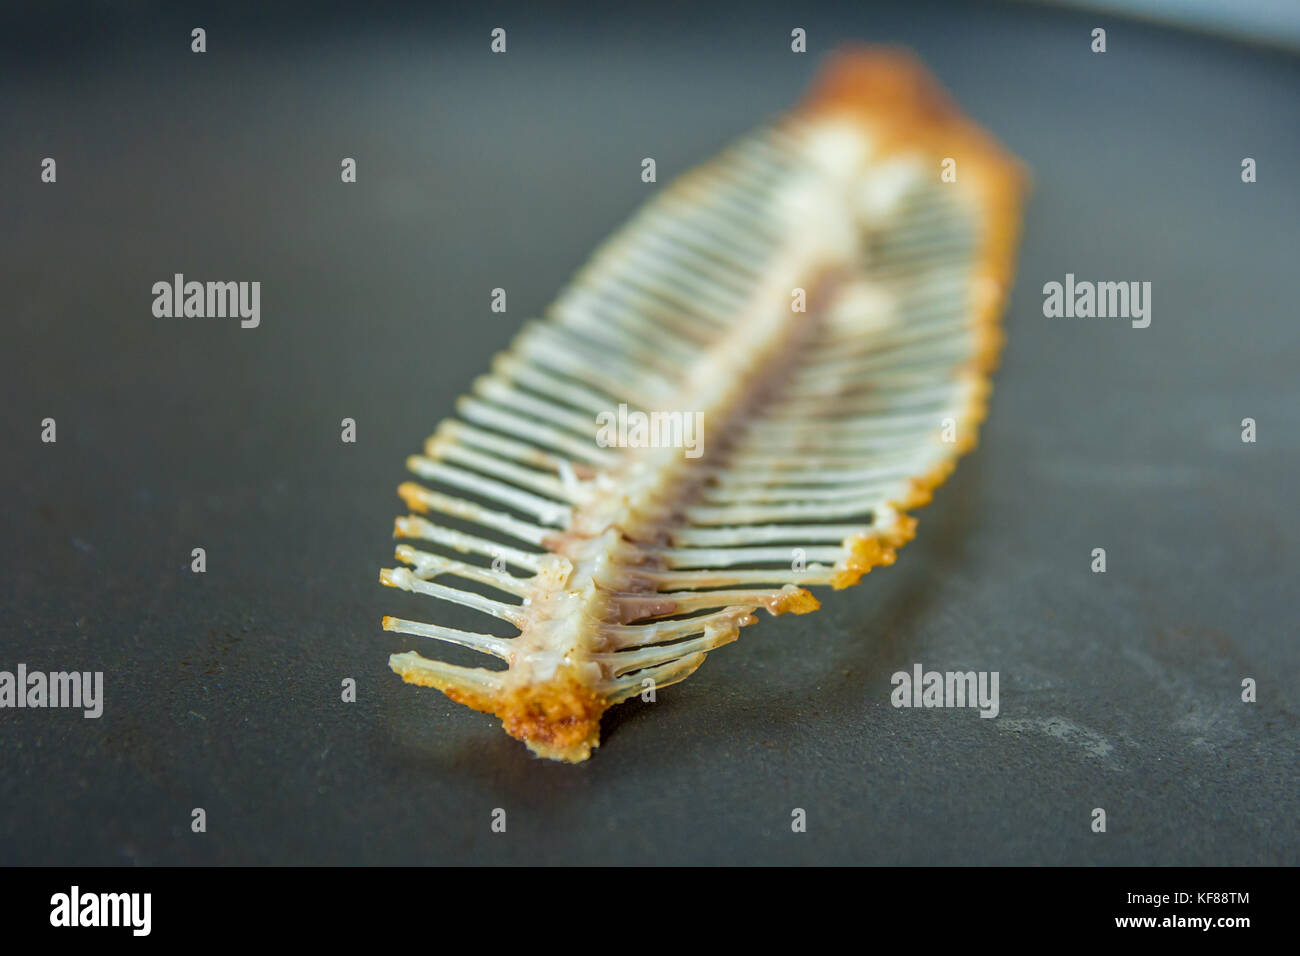 skeleton remains of a dover sole meal - Stock Image